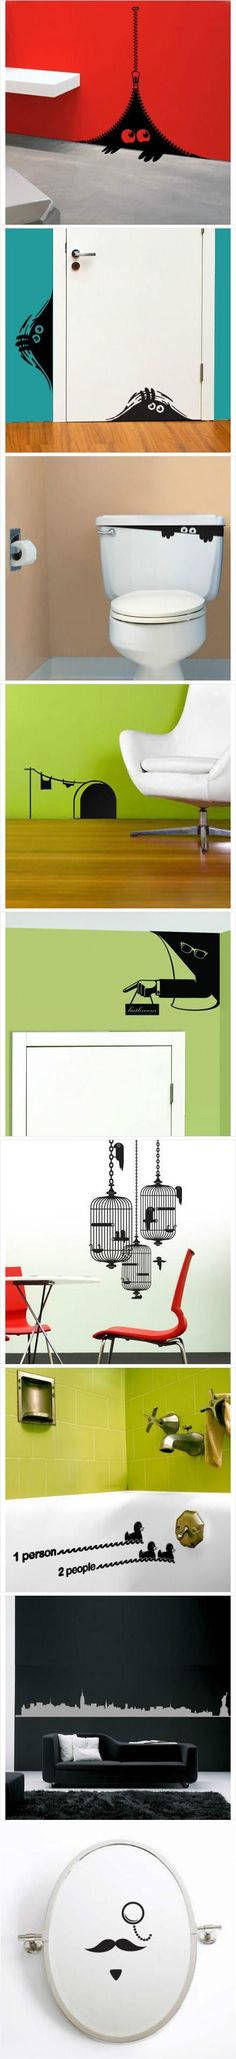 Simple yet really cool wall stickers, which one is your favorite?